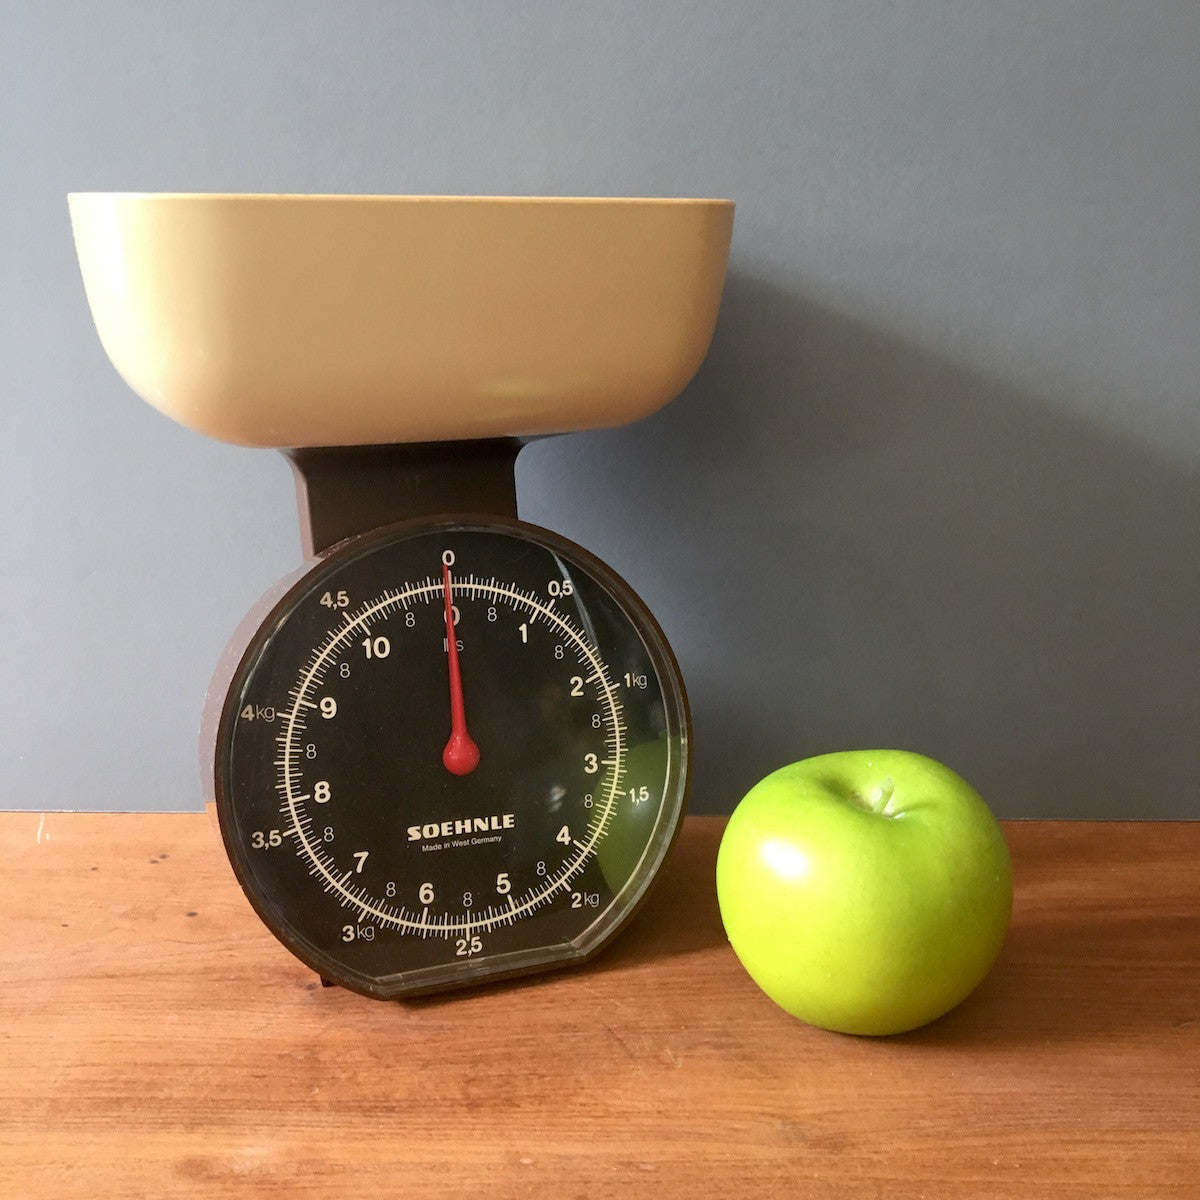 Soehnle kitchen scale - lbs and kg - vintage 1970s